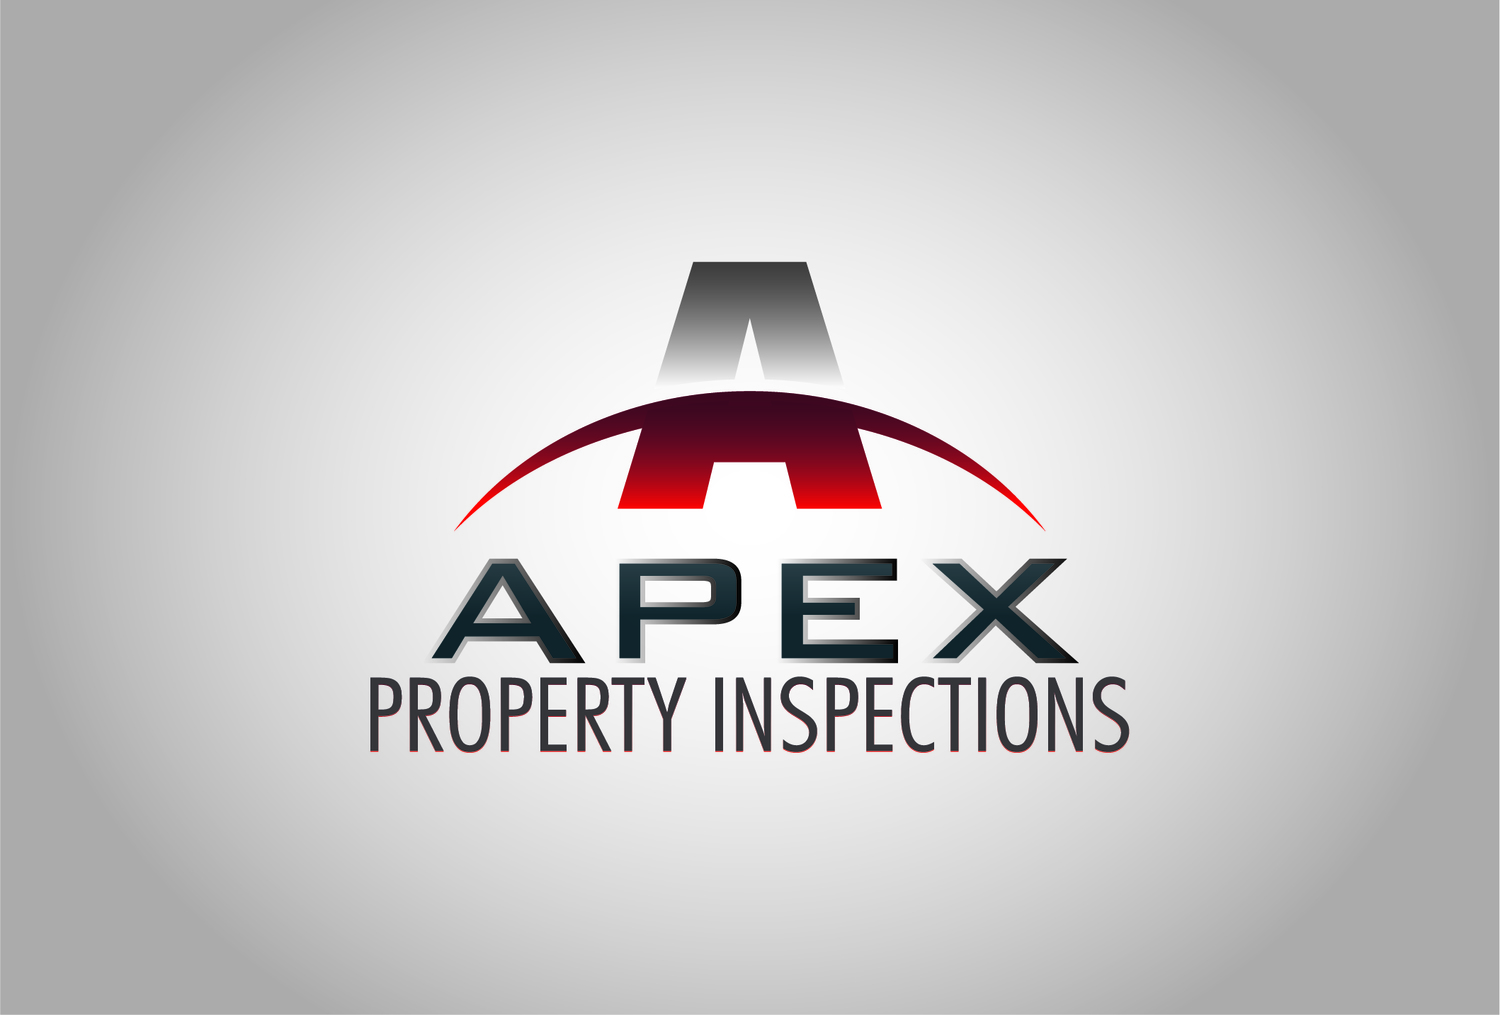 Apex property inspections 02